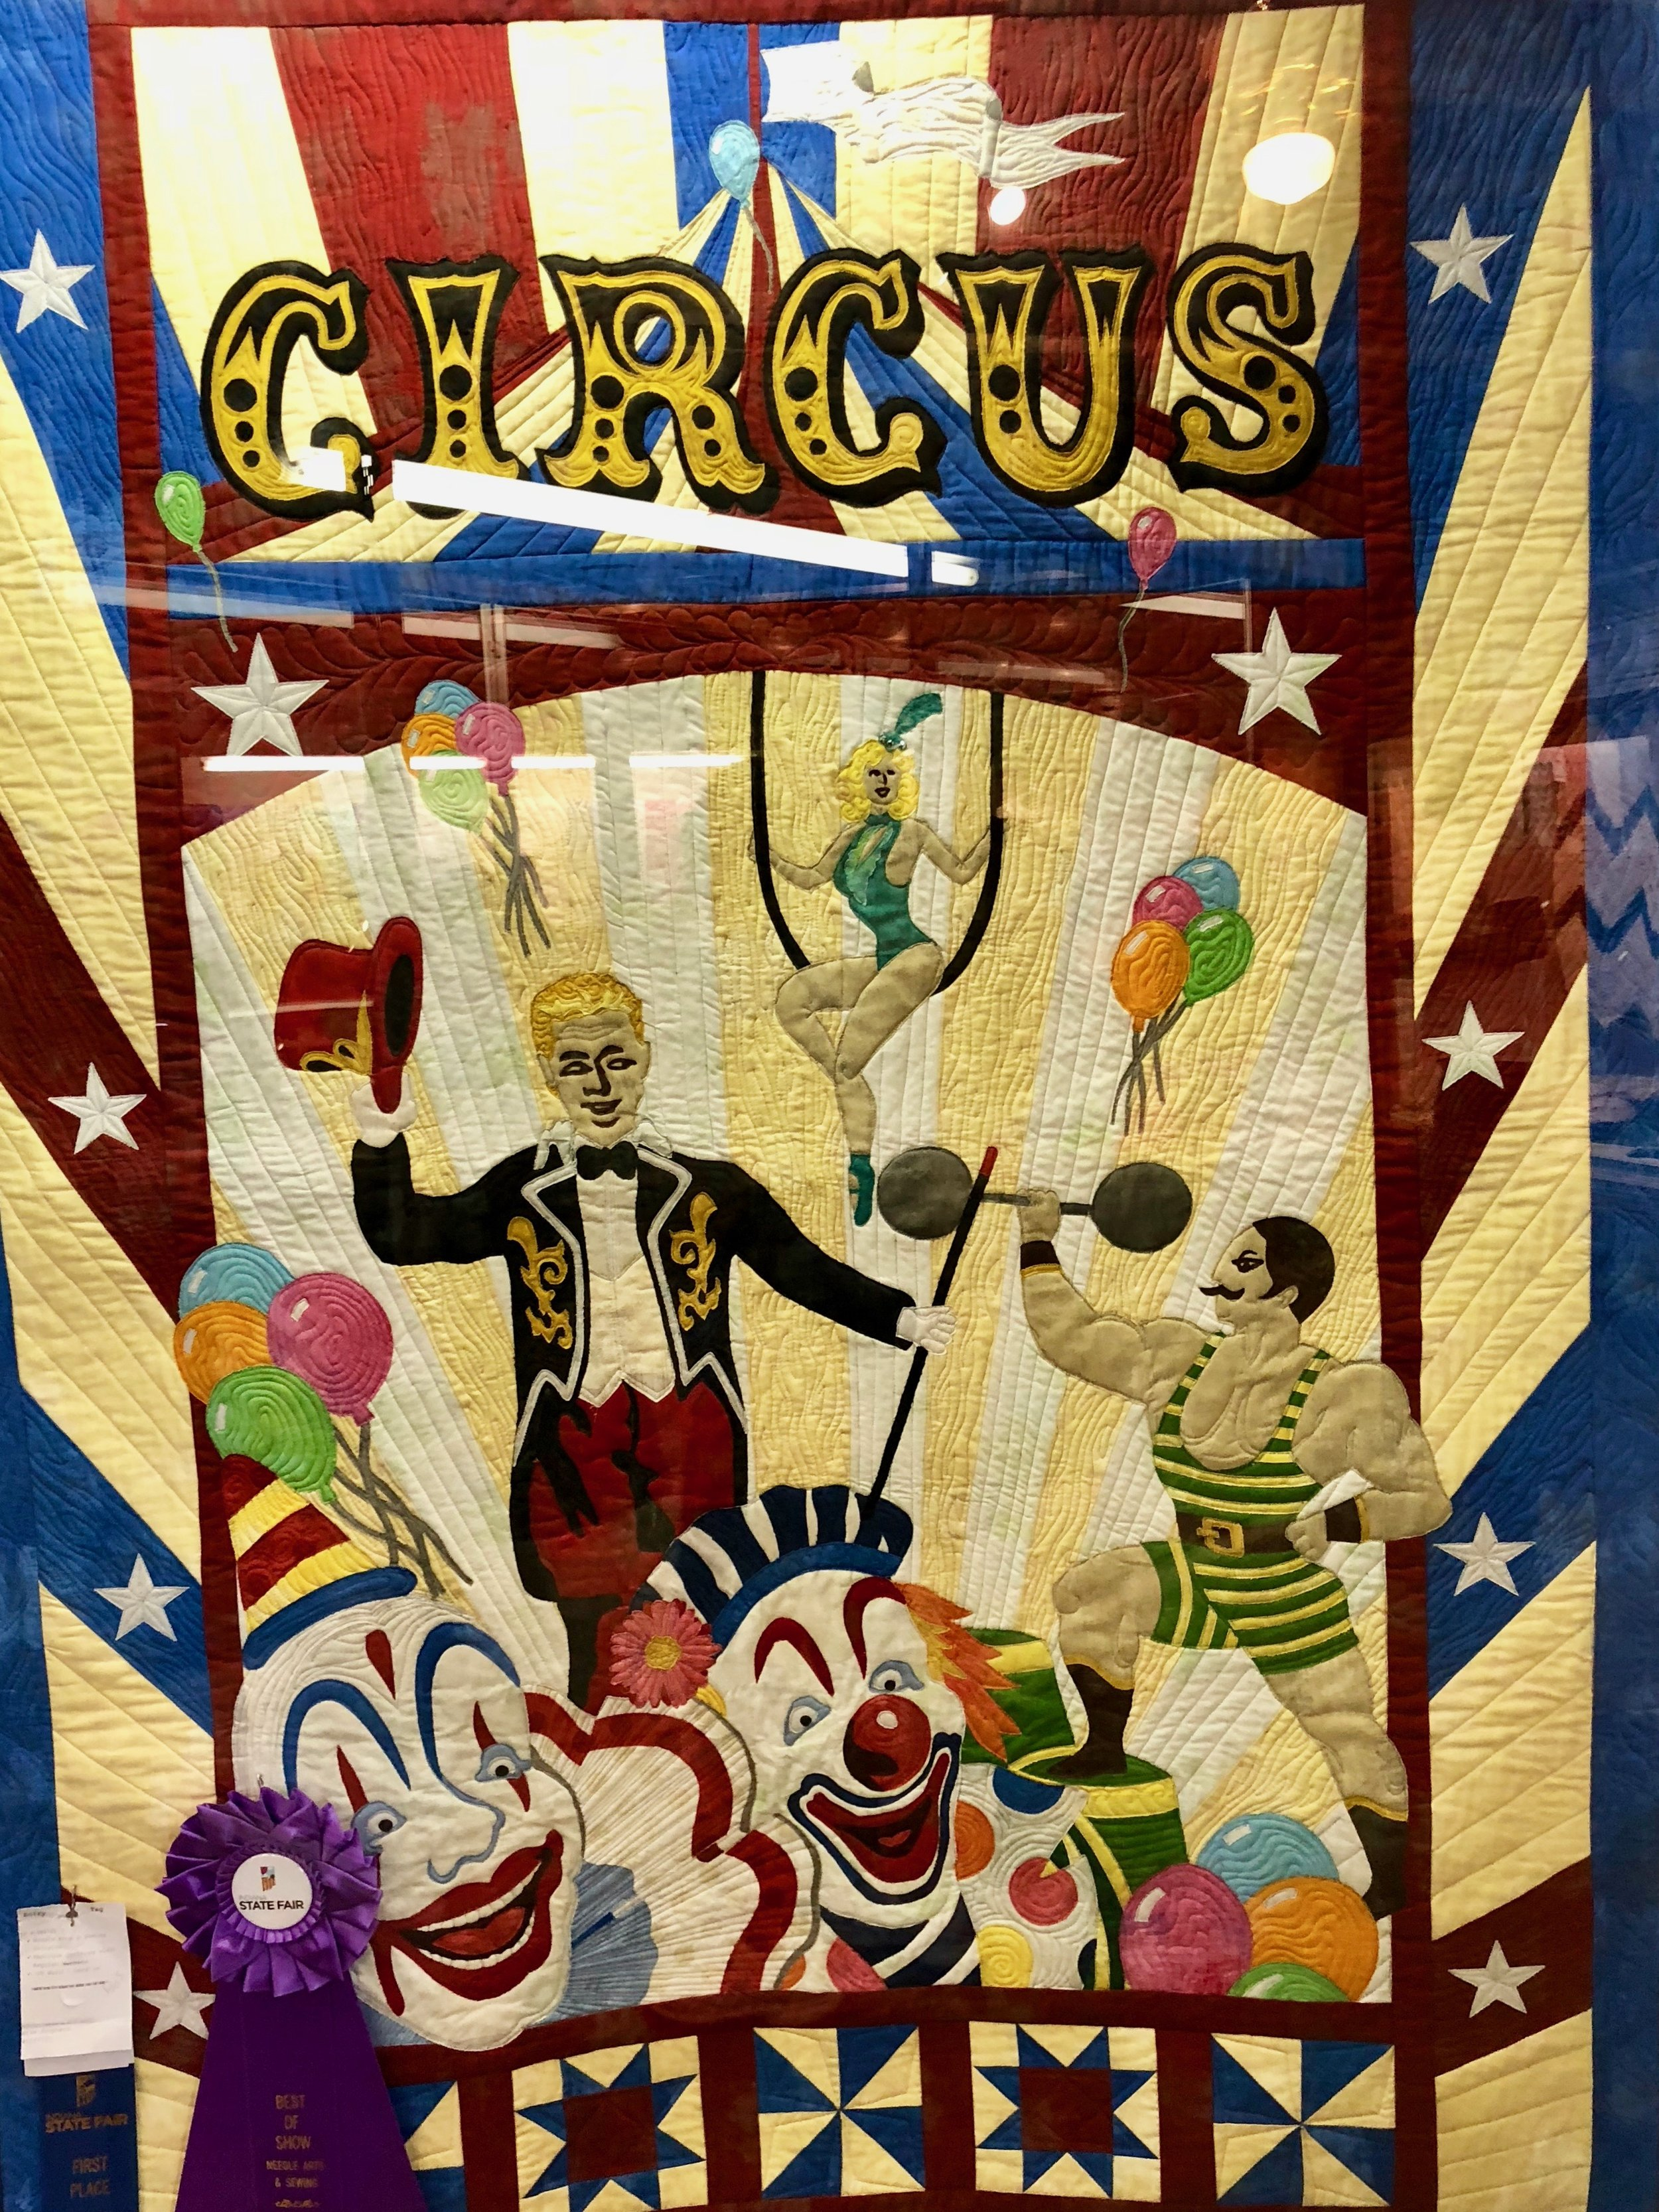 This year's theme: Circus